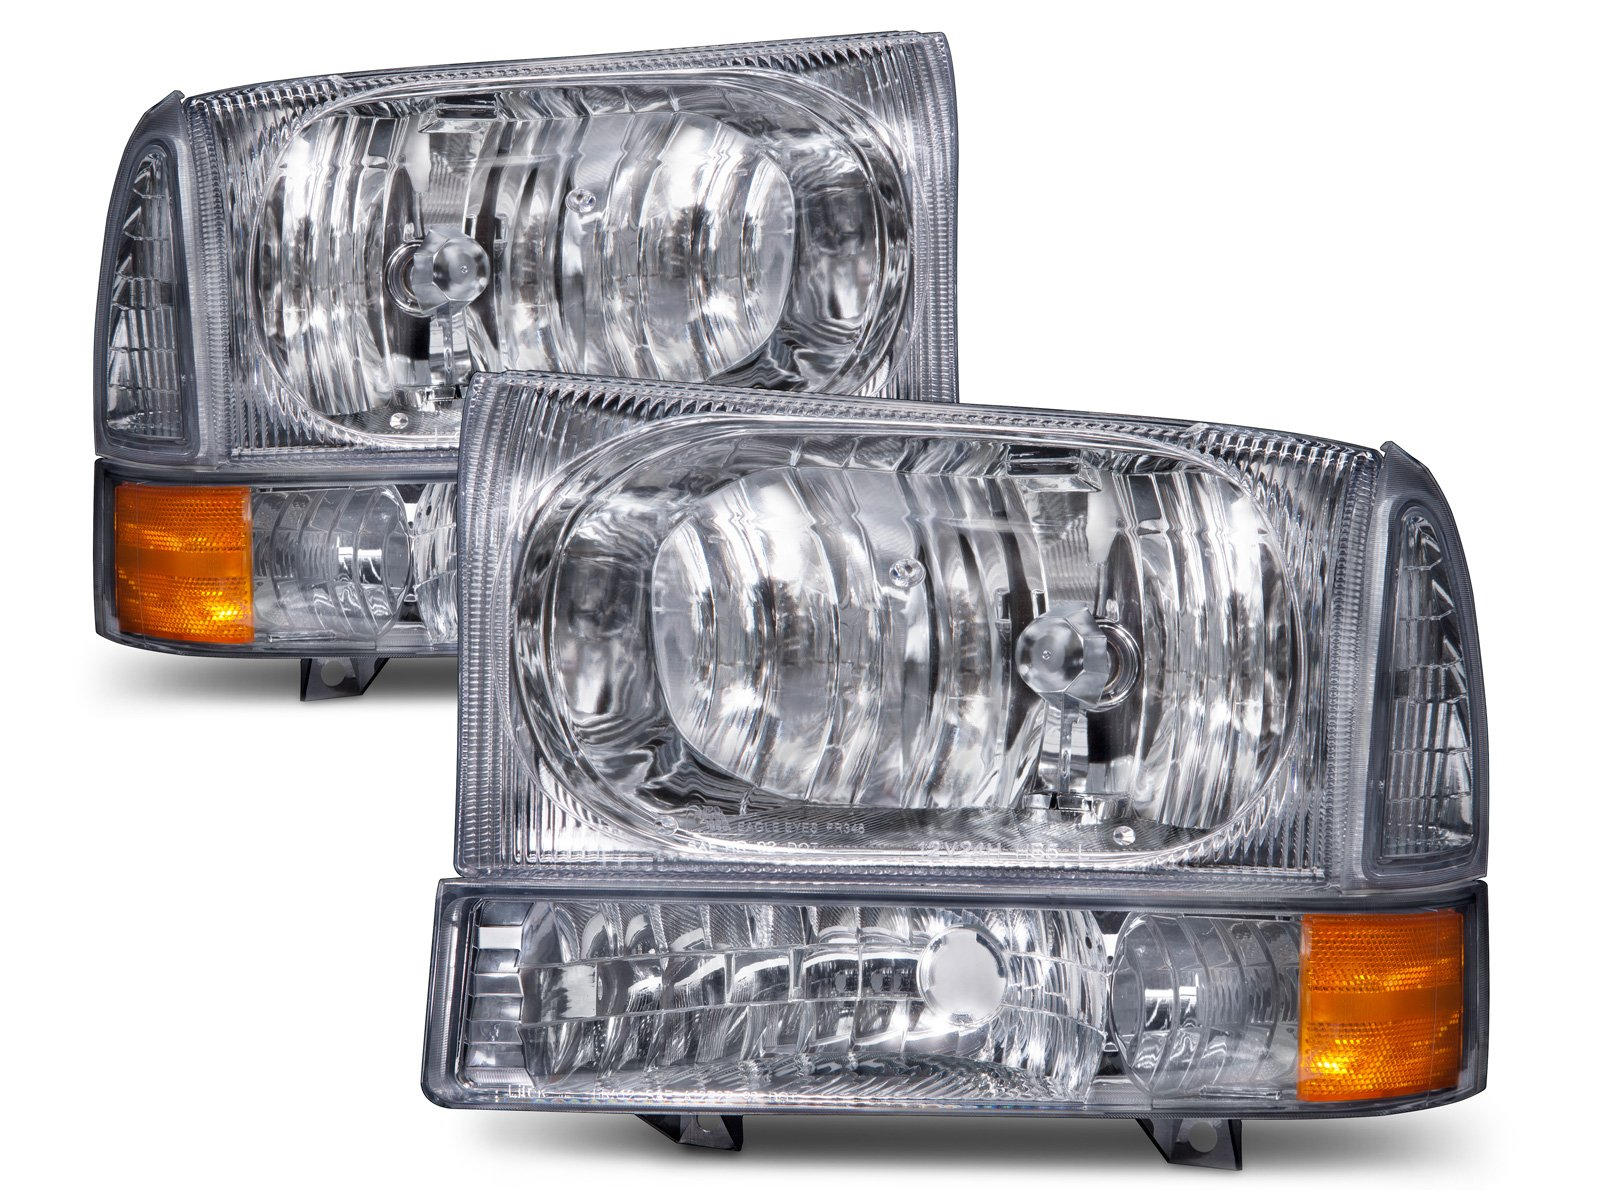 HEADLIGHTSDEPOT RV Headlights Compatible with Fleetwood Discovery 03-06 Includes Left Driver and Right Passenger Side Headlamps by HEADLIGHTSDEPOT